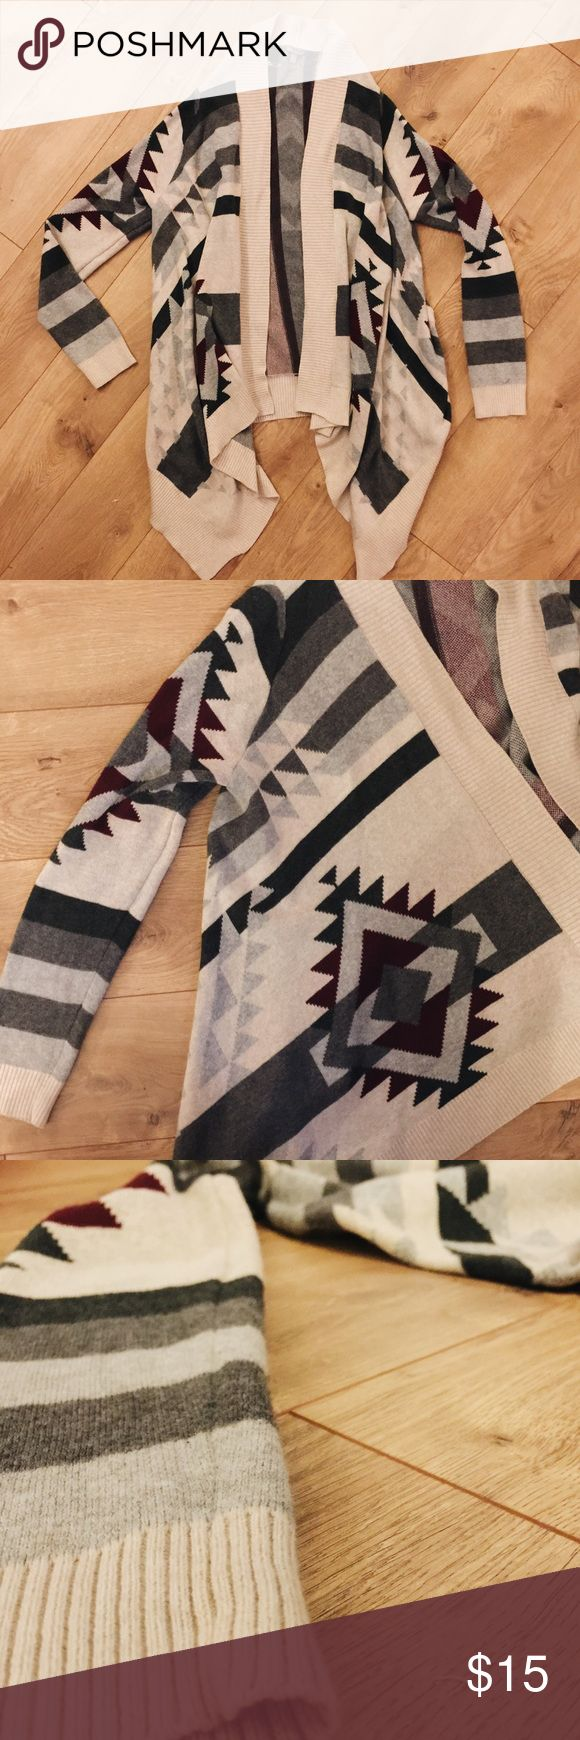 Tribal print cardigan Tan with burgundy and gray tribal print. Longer in the front for a flowy look. Worn ONCE. Charlotte Russe Sweaters Cardigans